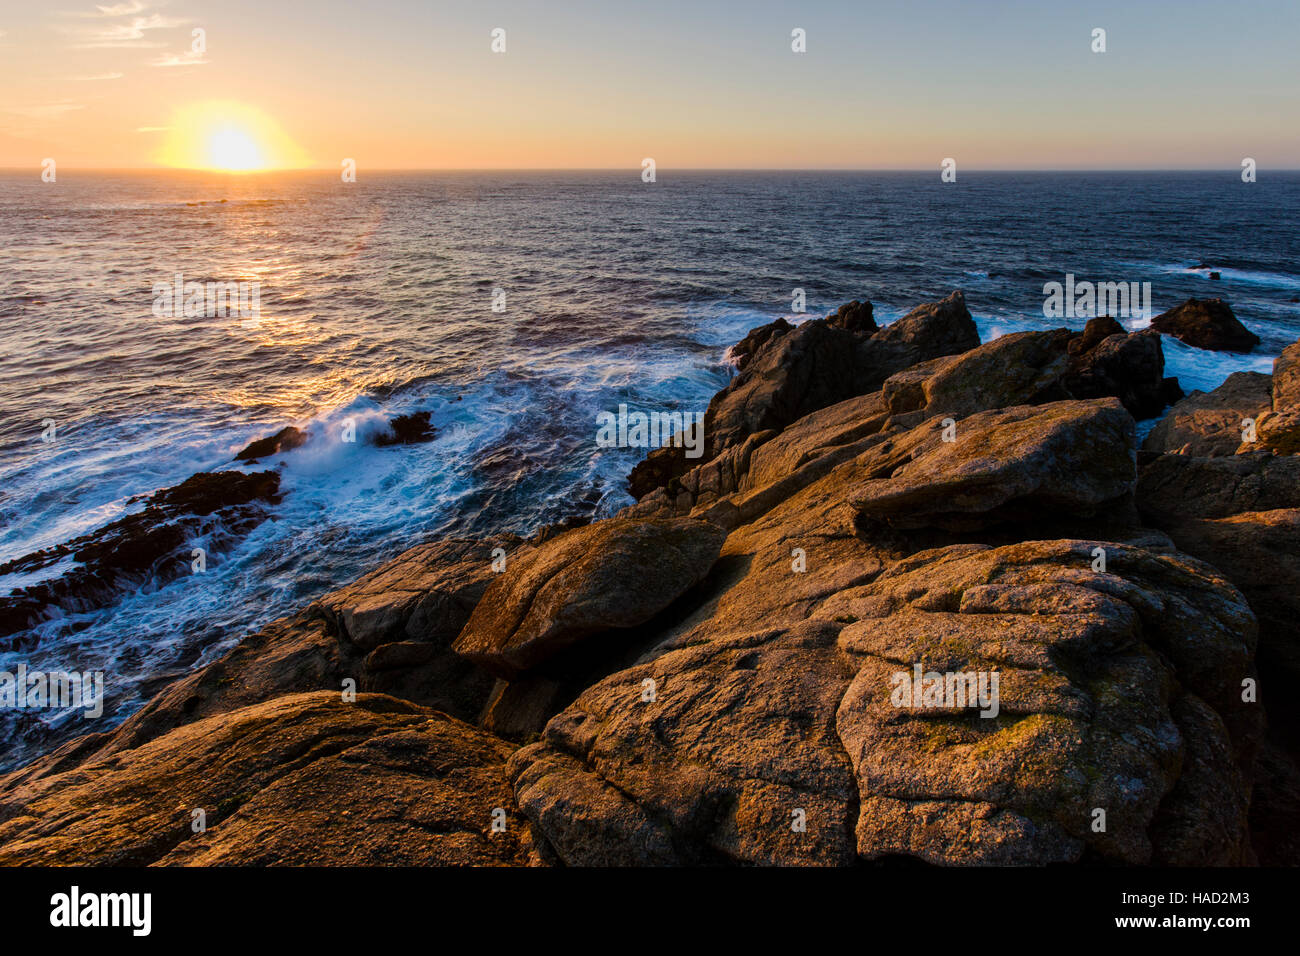 Sunset over the Pacific Ocean, Point Lobos State Reserve, Big Sur, California, USA Stock Photo